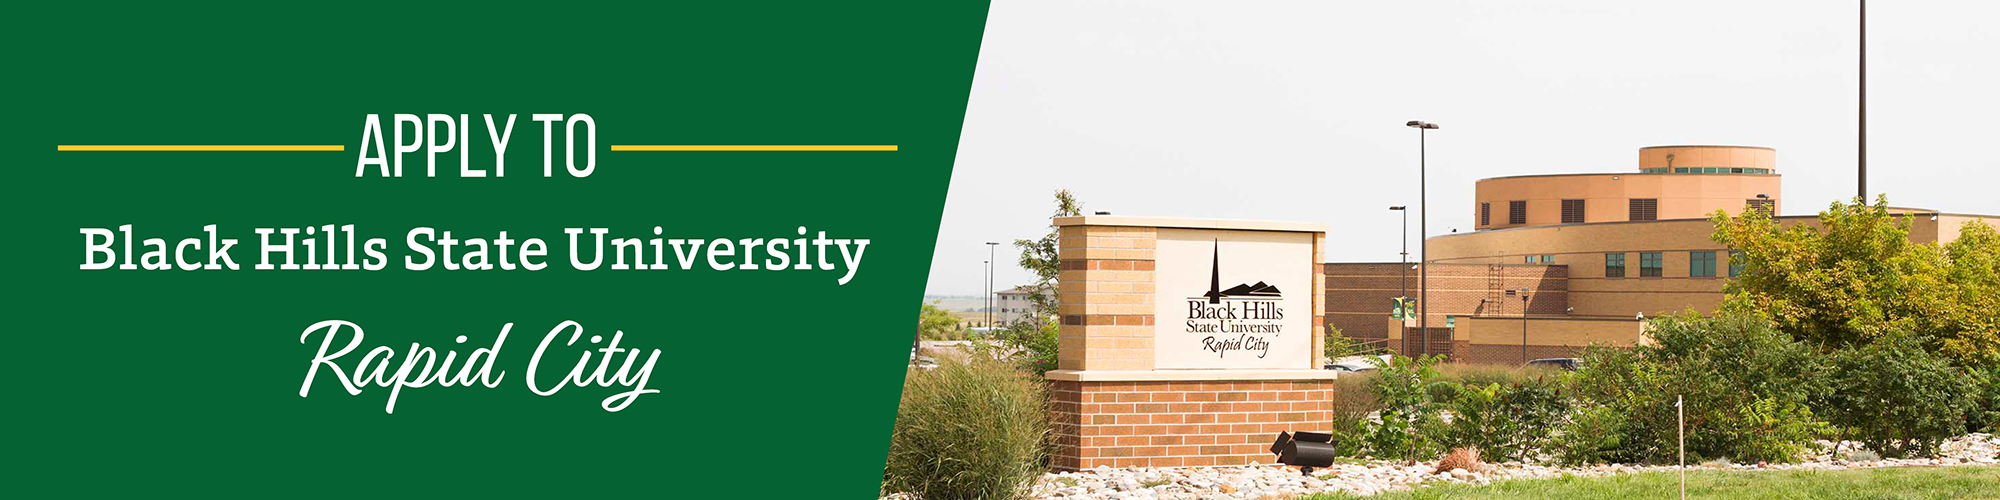 Apply to BHSU-Rapid City